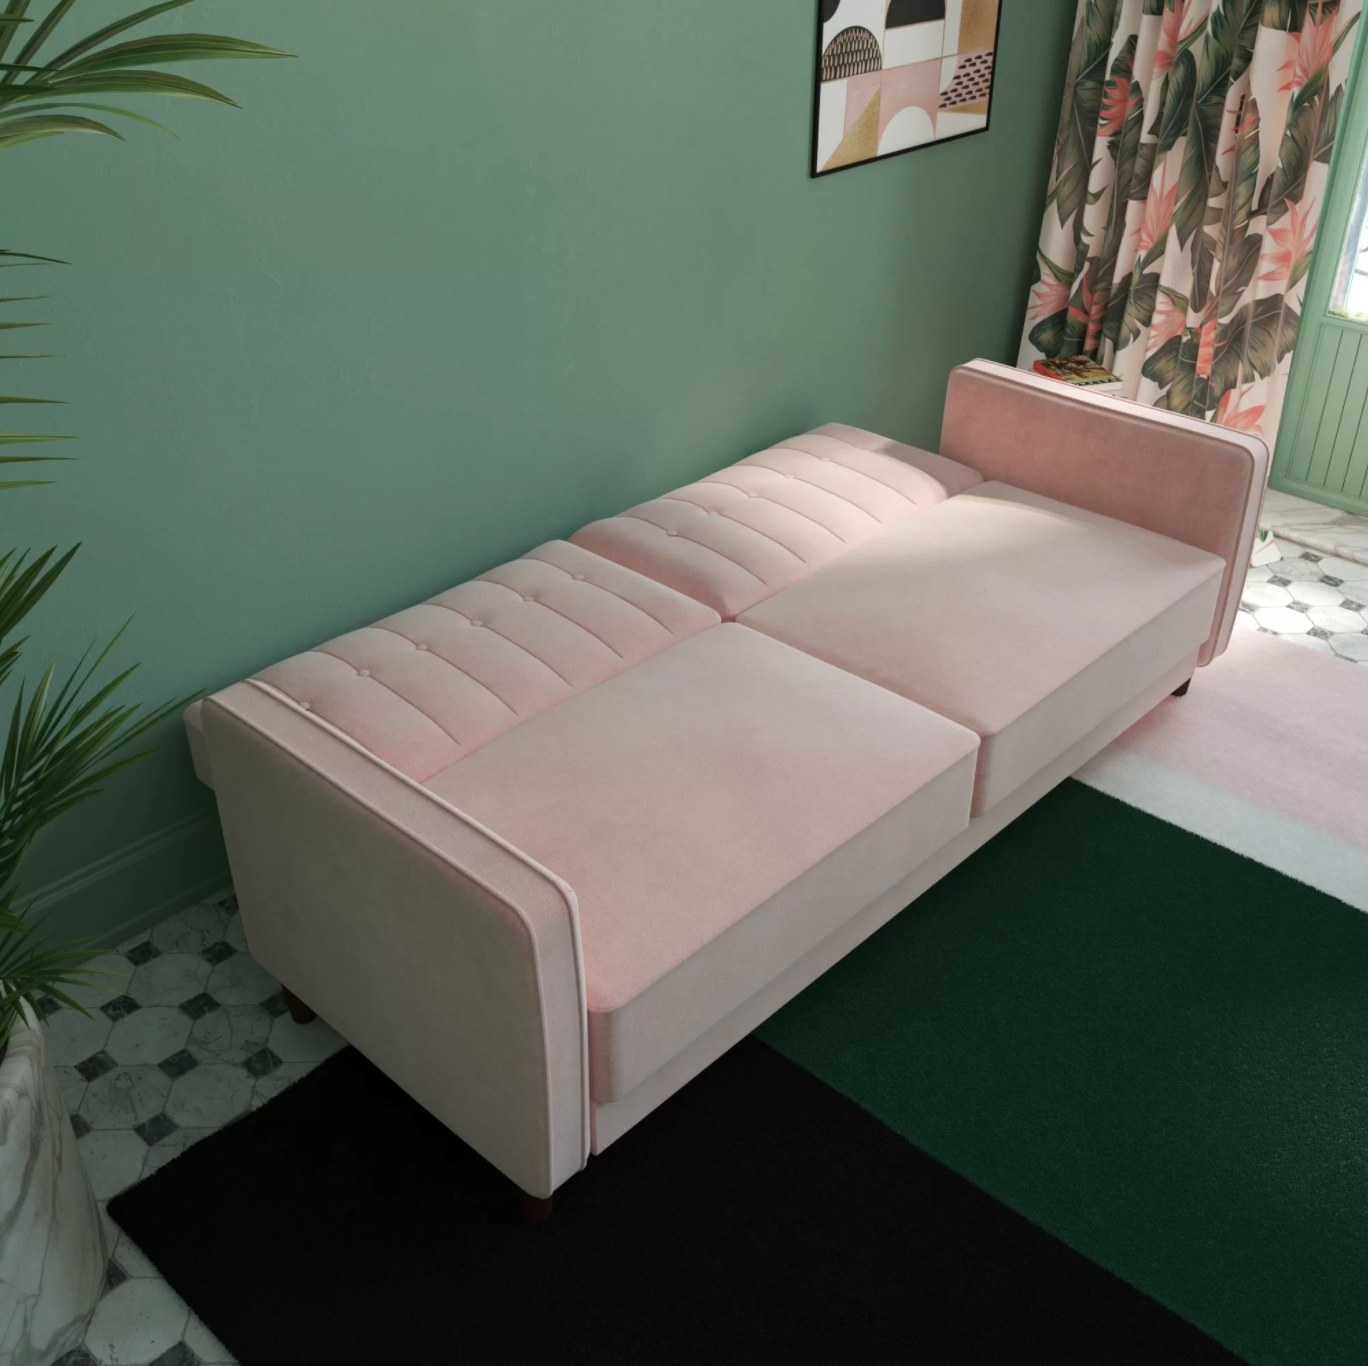 The square armed velvet couch in pink